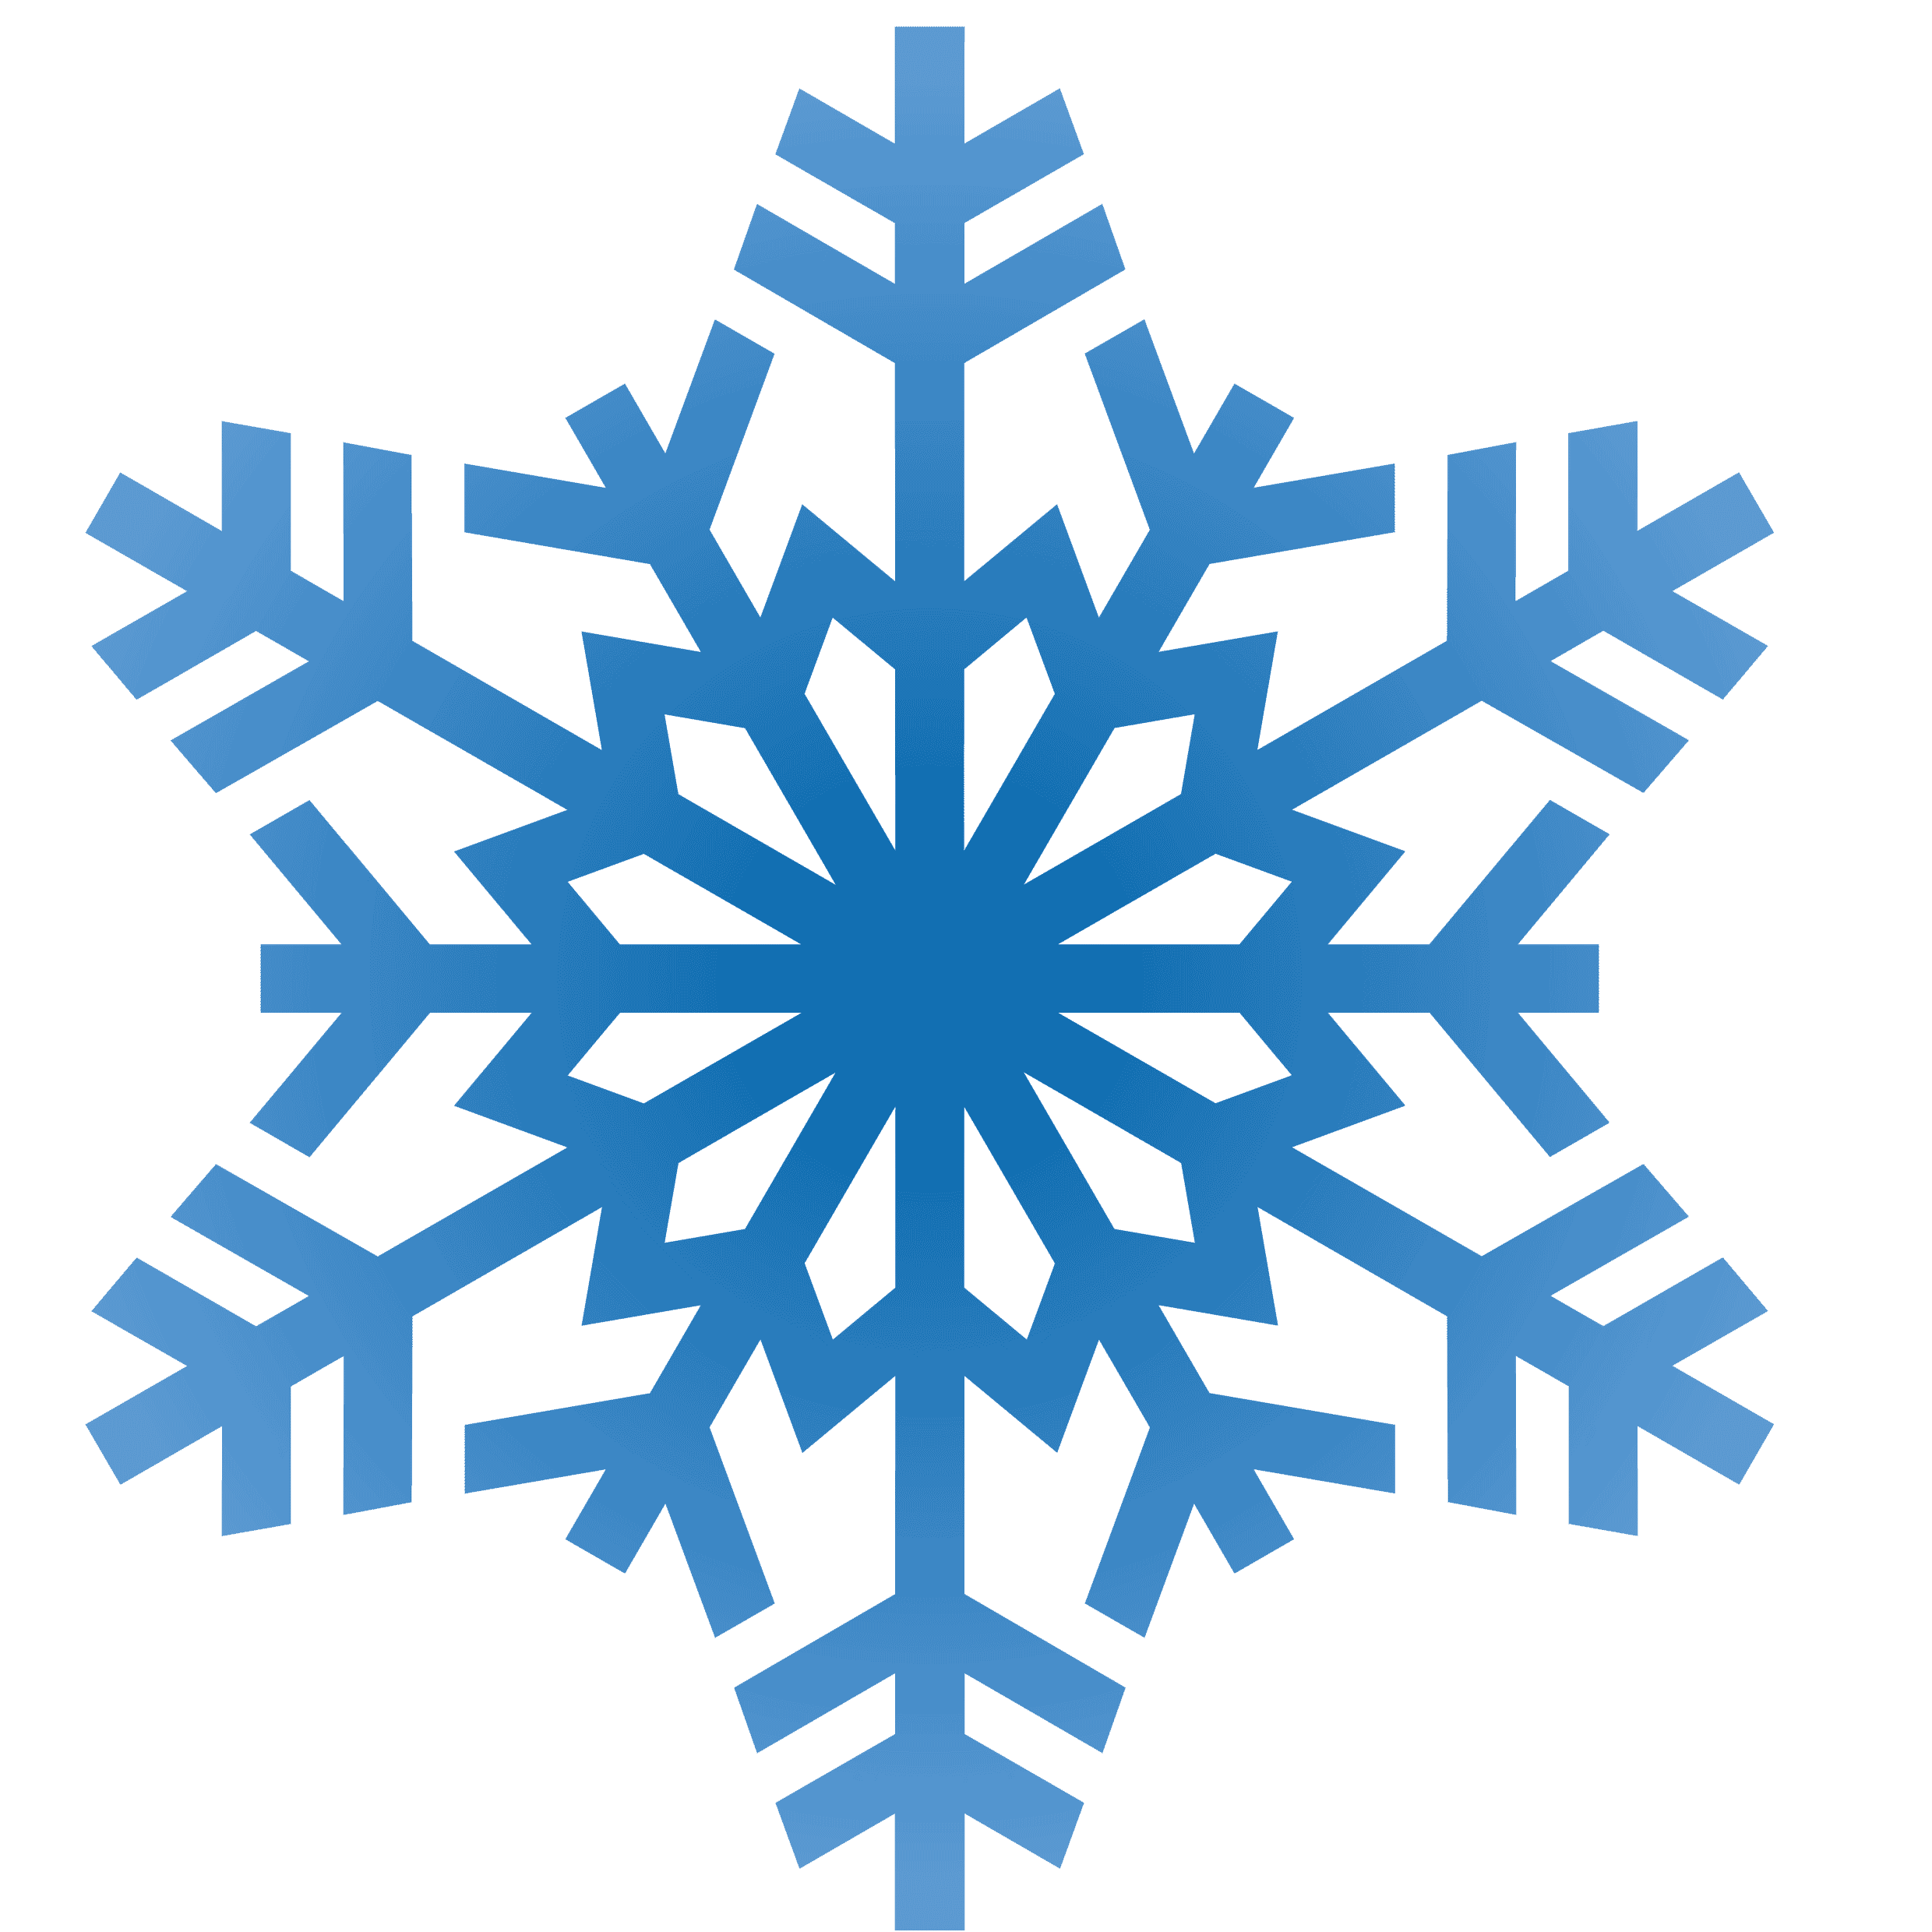 2480x2480 Snow Flakes Clipart